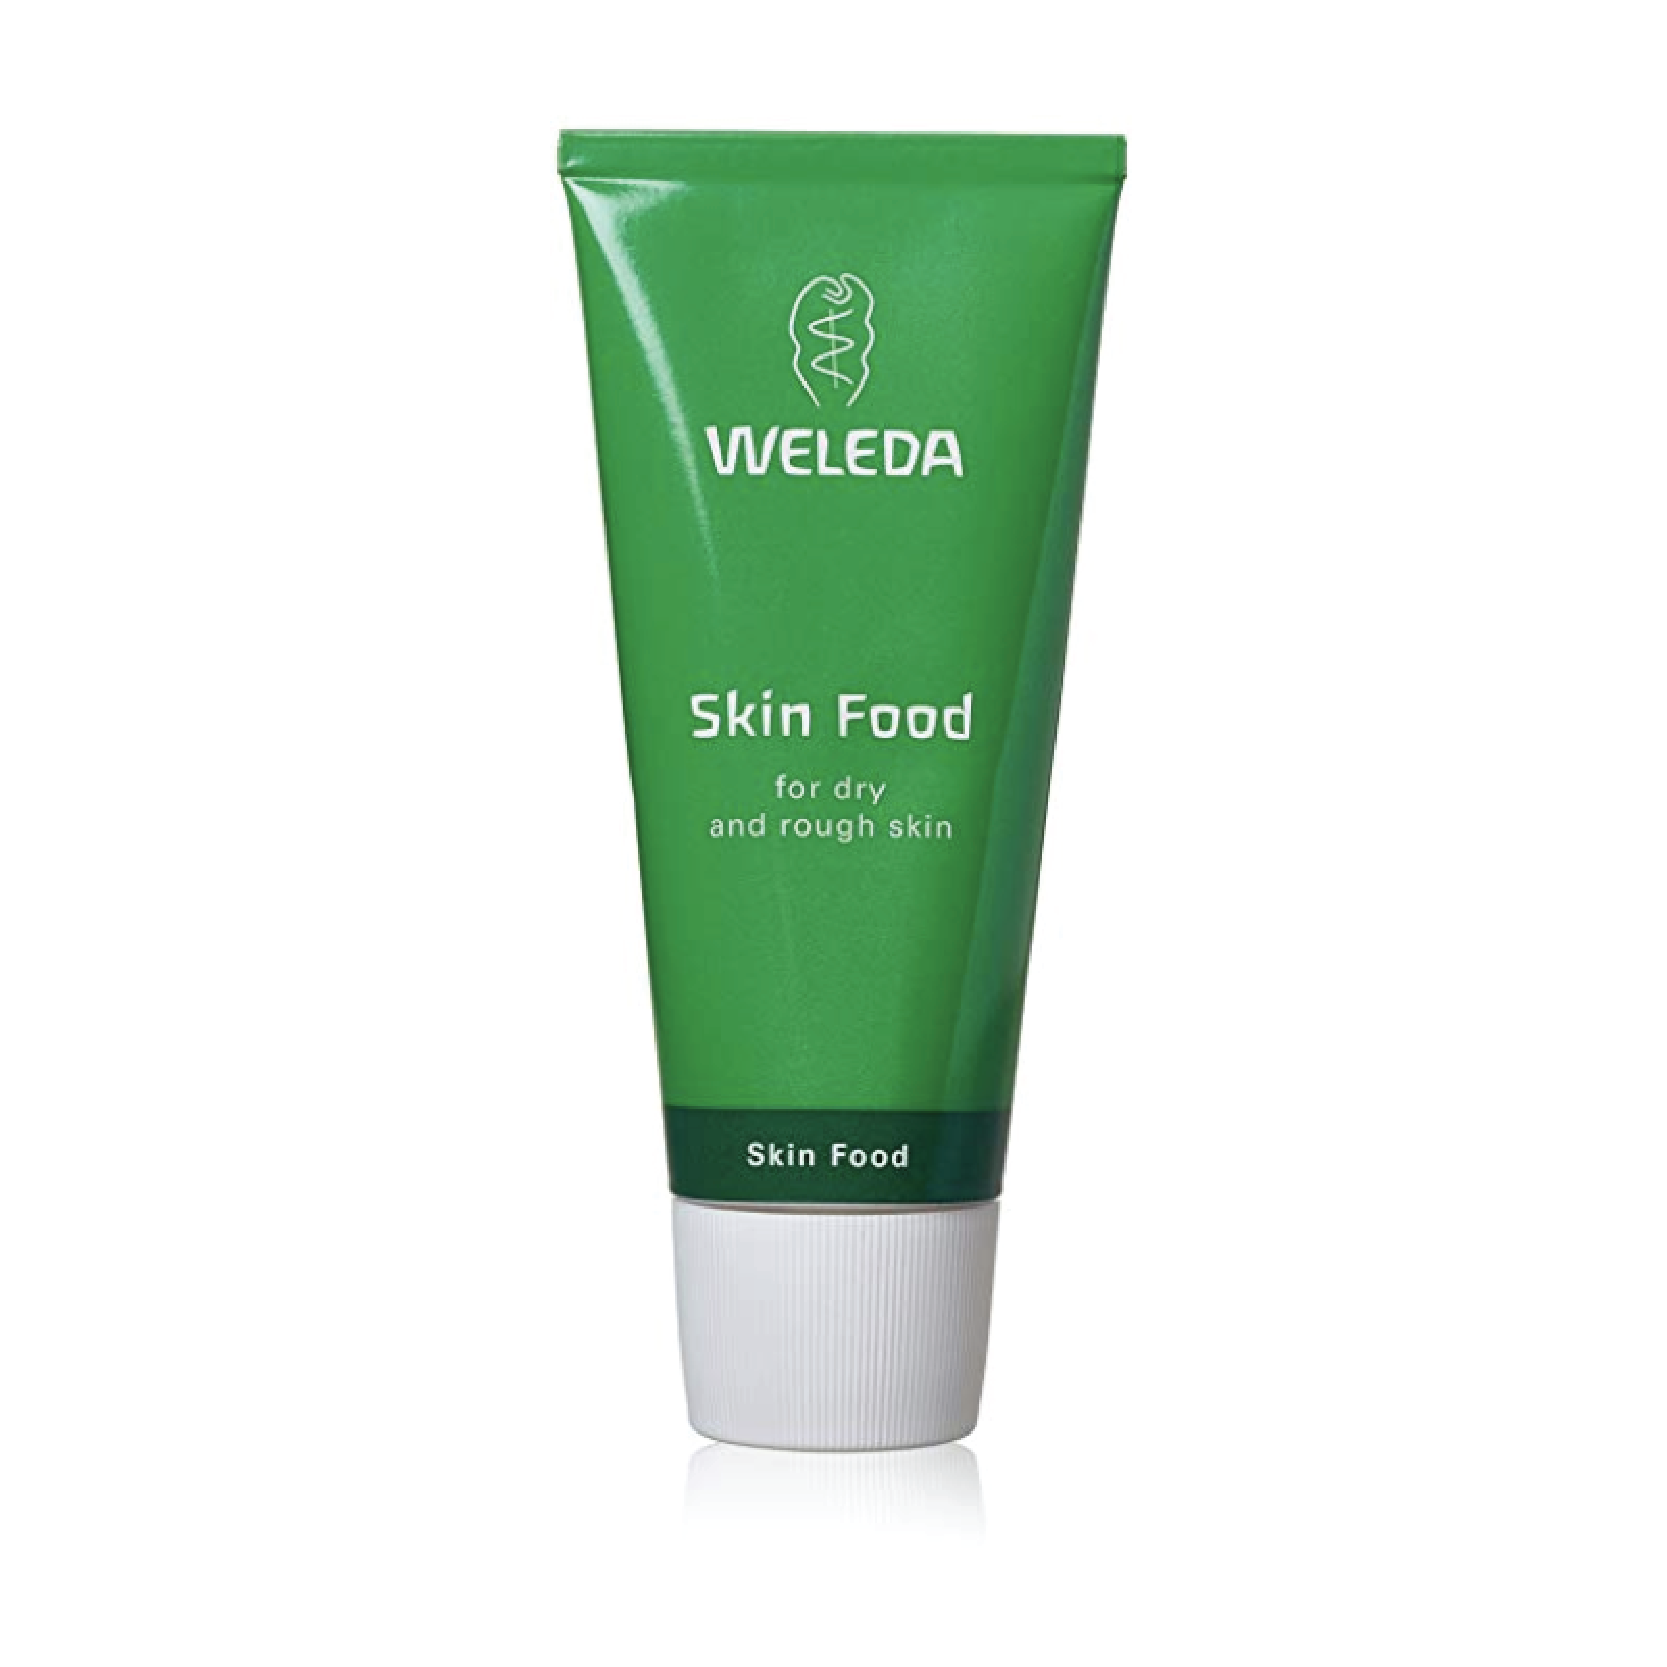 Weleda Skin Food - $9.87 on TargetThis constantly-raved about body lotion is perfect for someone suffering from dry or rough skin.